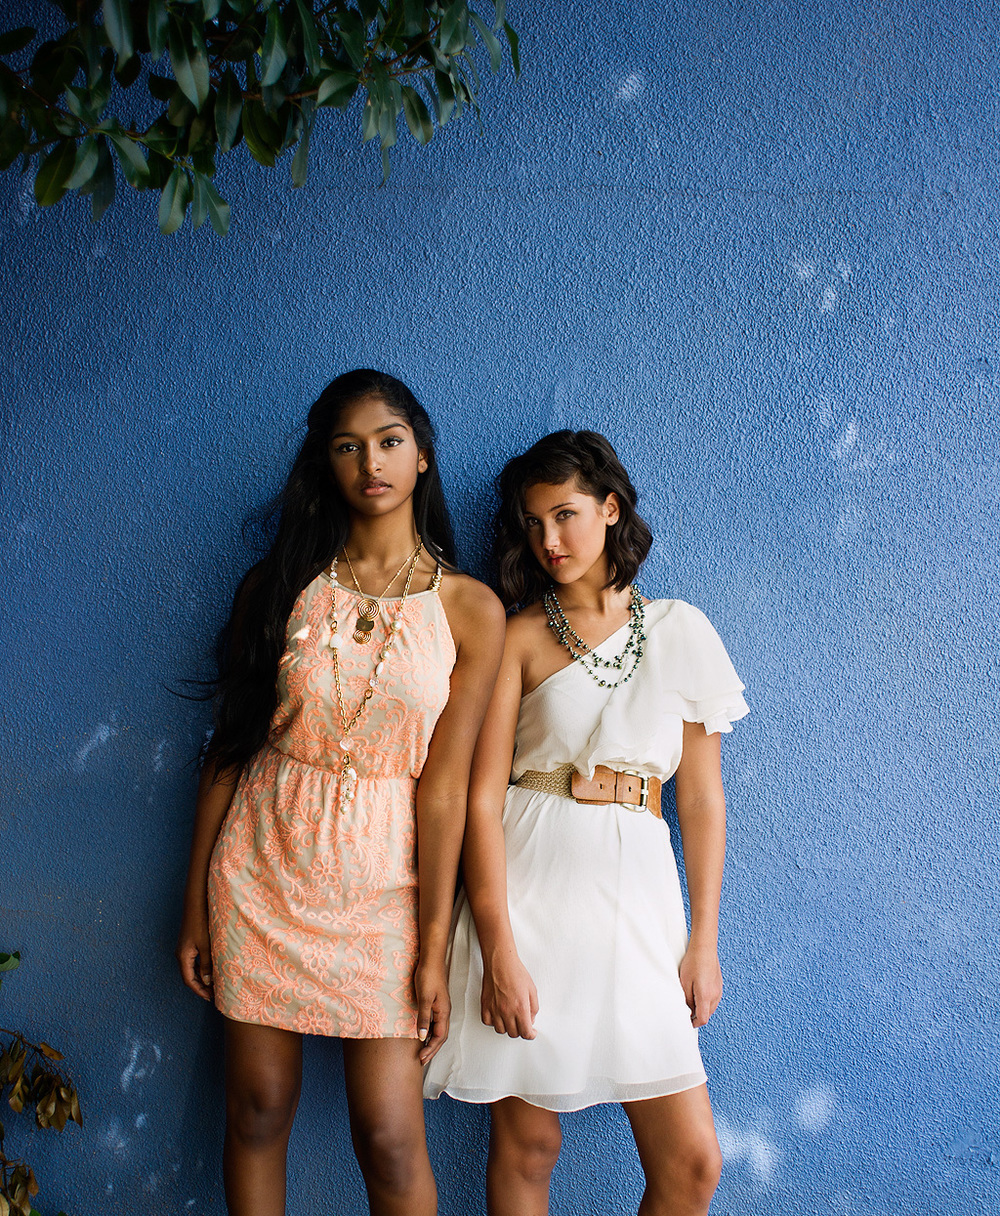 Kaaviya and Alexandra Peach n White dresses_Cece_web copy.jpg